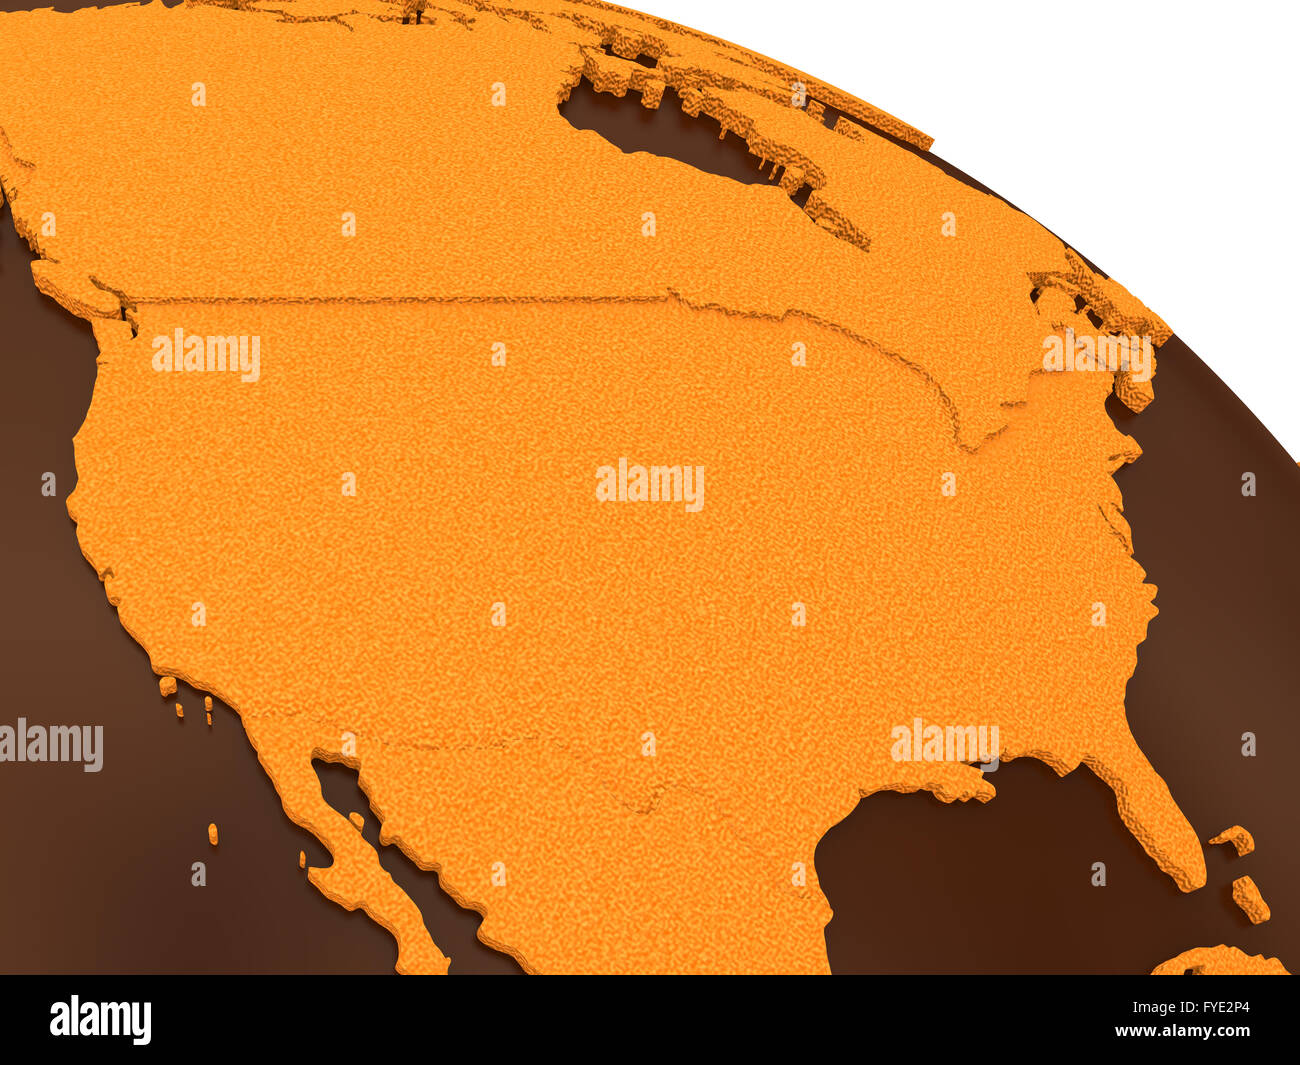 USA on chocolate model of planet Earth. Sweet crusty continents ...